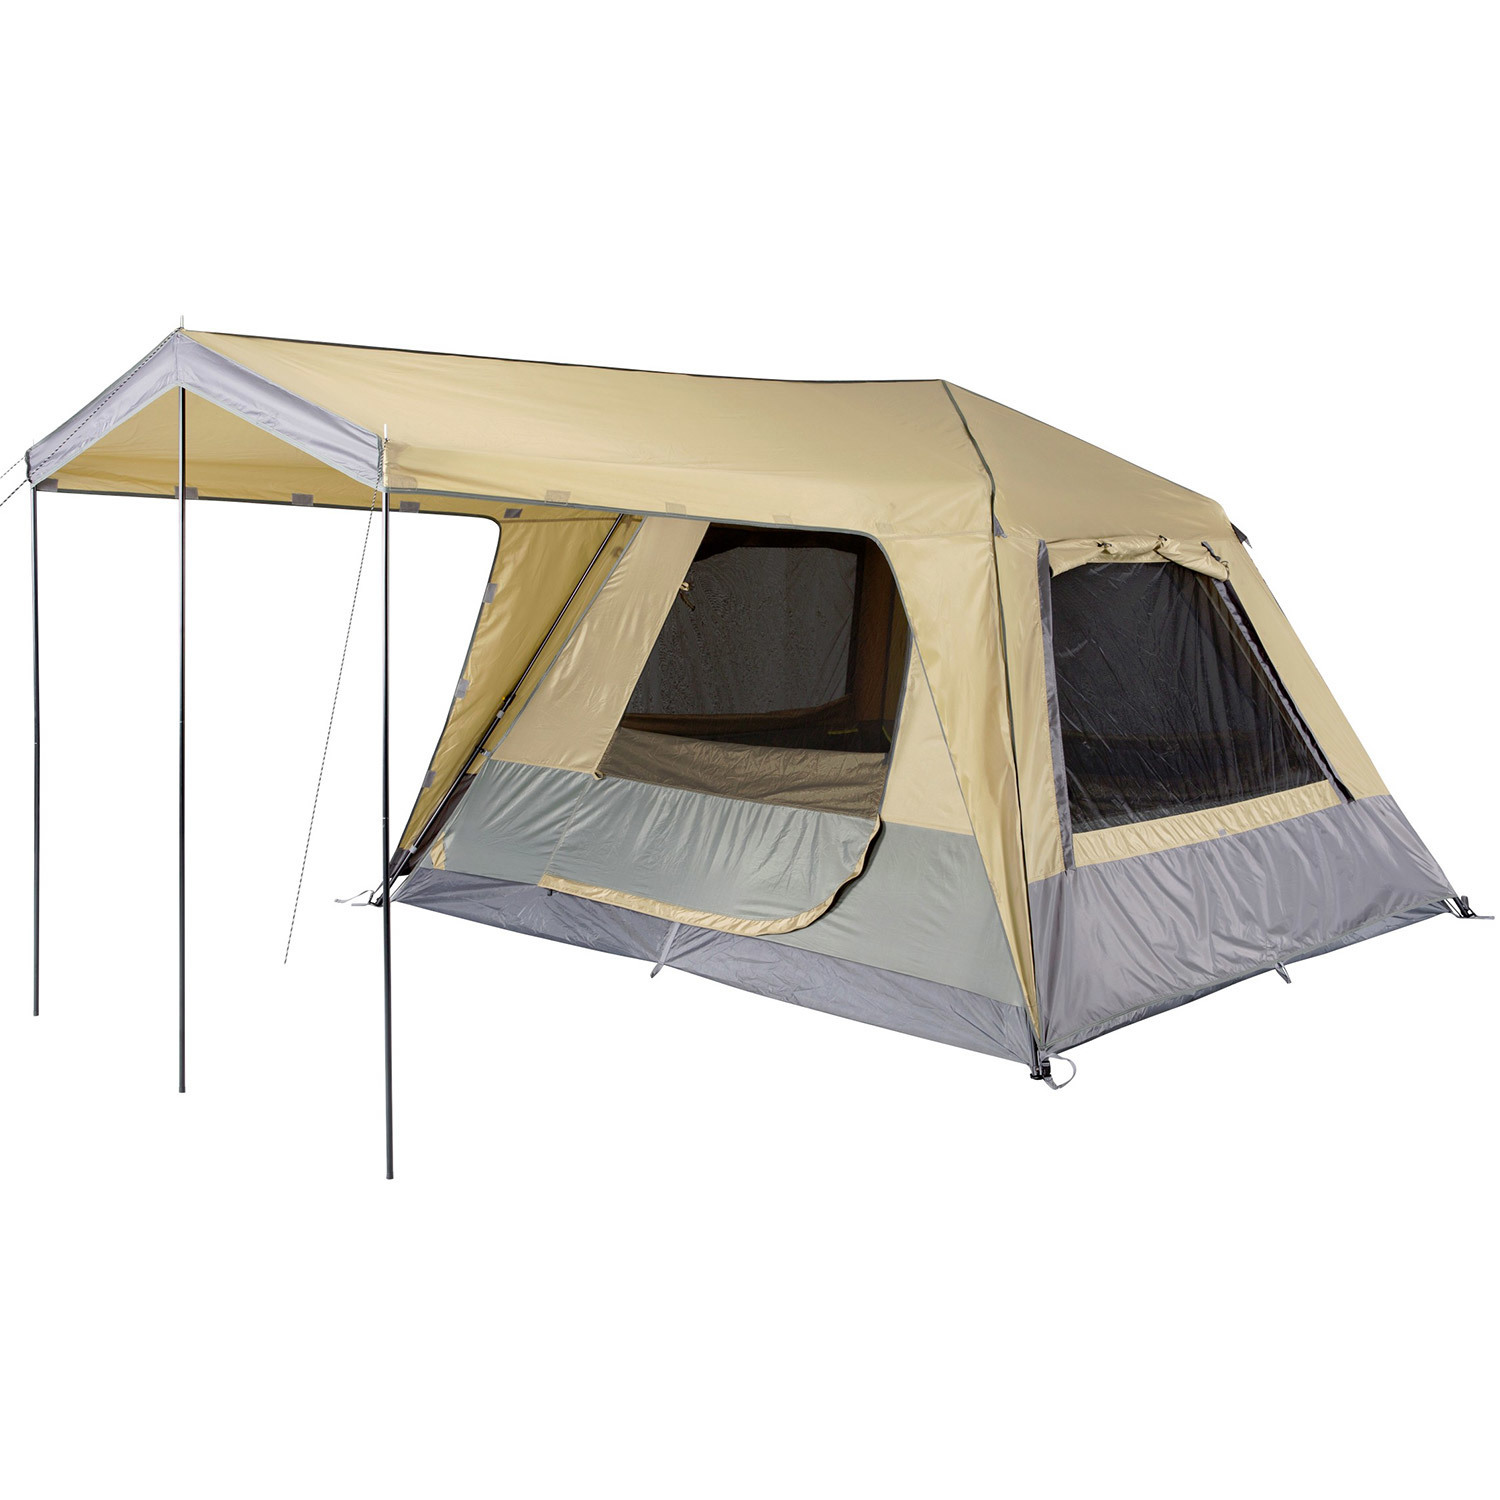 sc 1 st  Great Escape C&ing & OZtrail Fast Frame Tourer 300 Tent | Great Escape Camping